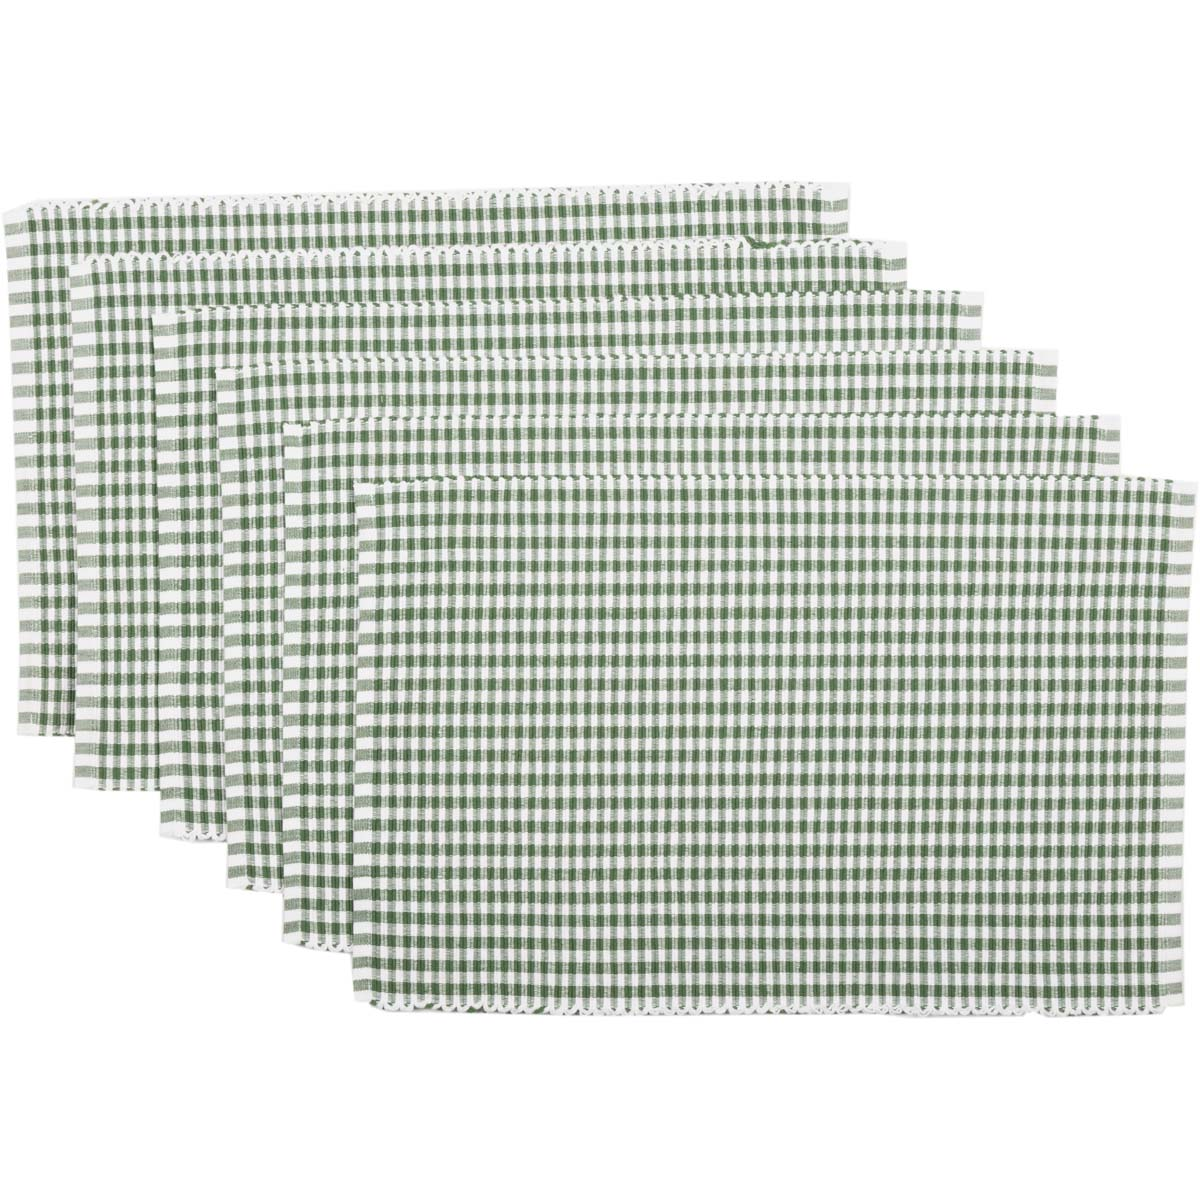 Tara Green Ribbed Placemat Set of 6 12x18